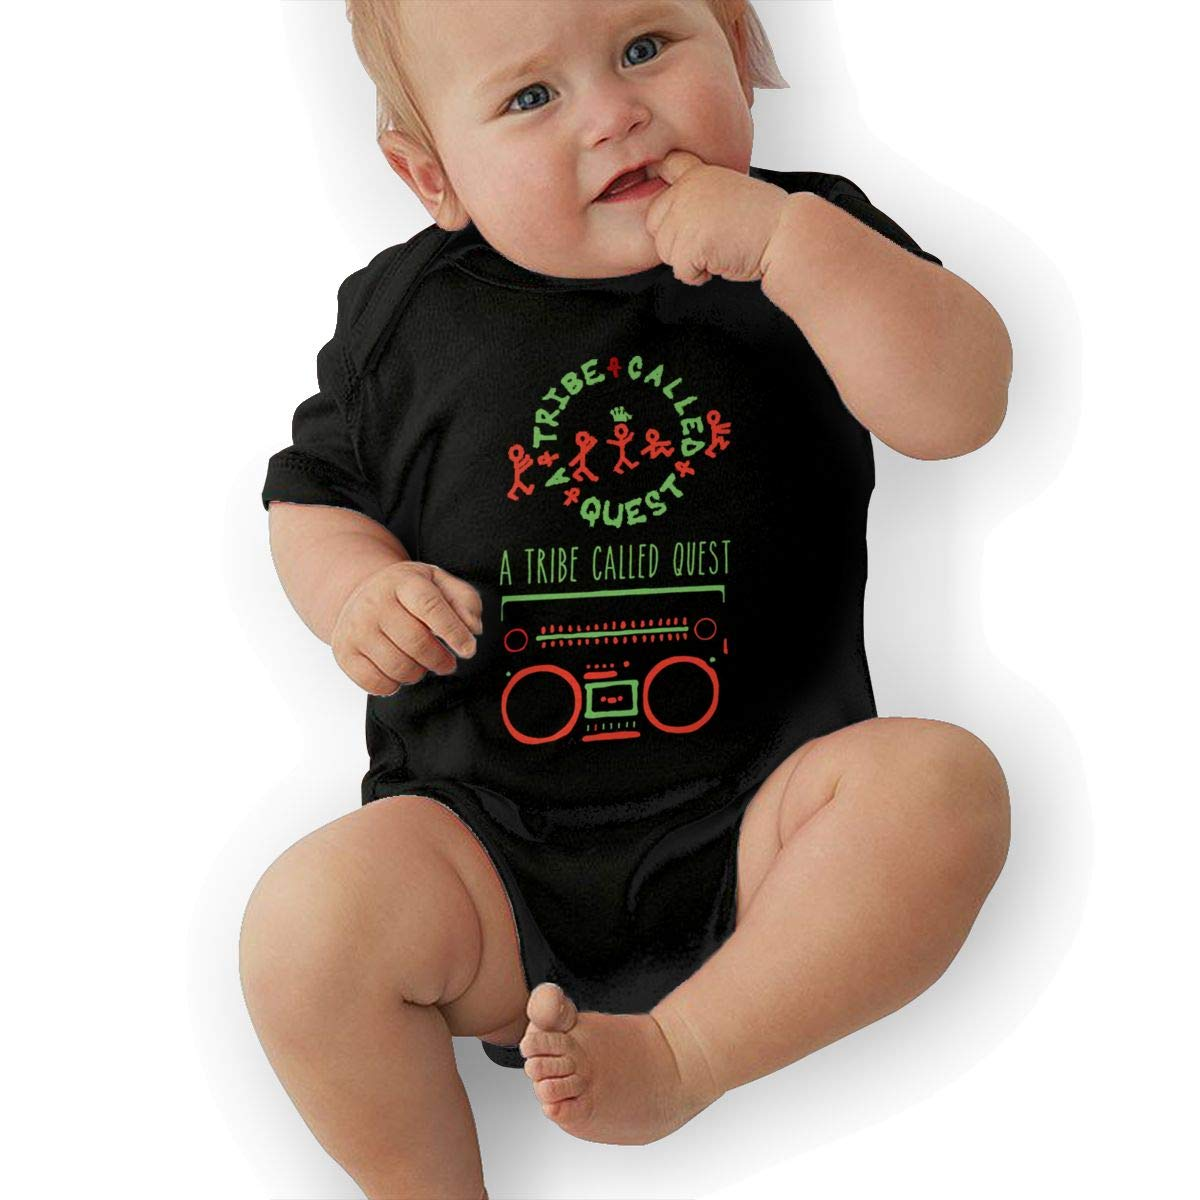 LuckyTagy A Tribe Called Quest Logo Unisex Classic Toddler Romper Baby BoyVest Black